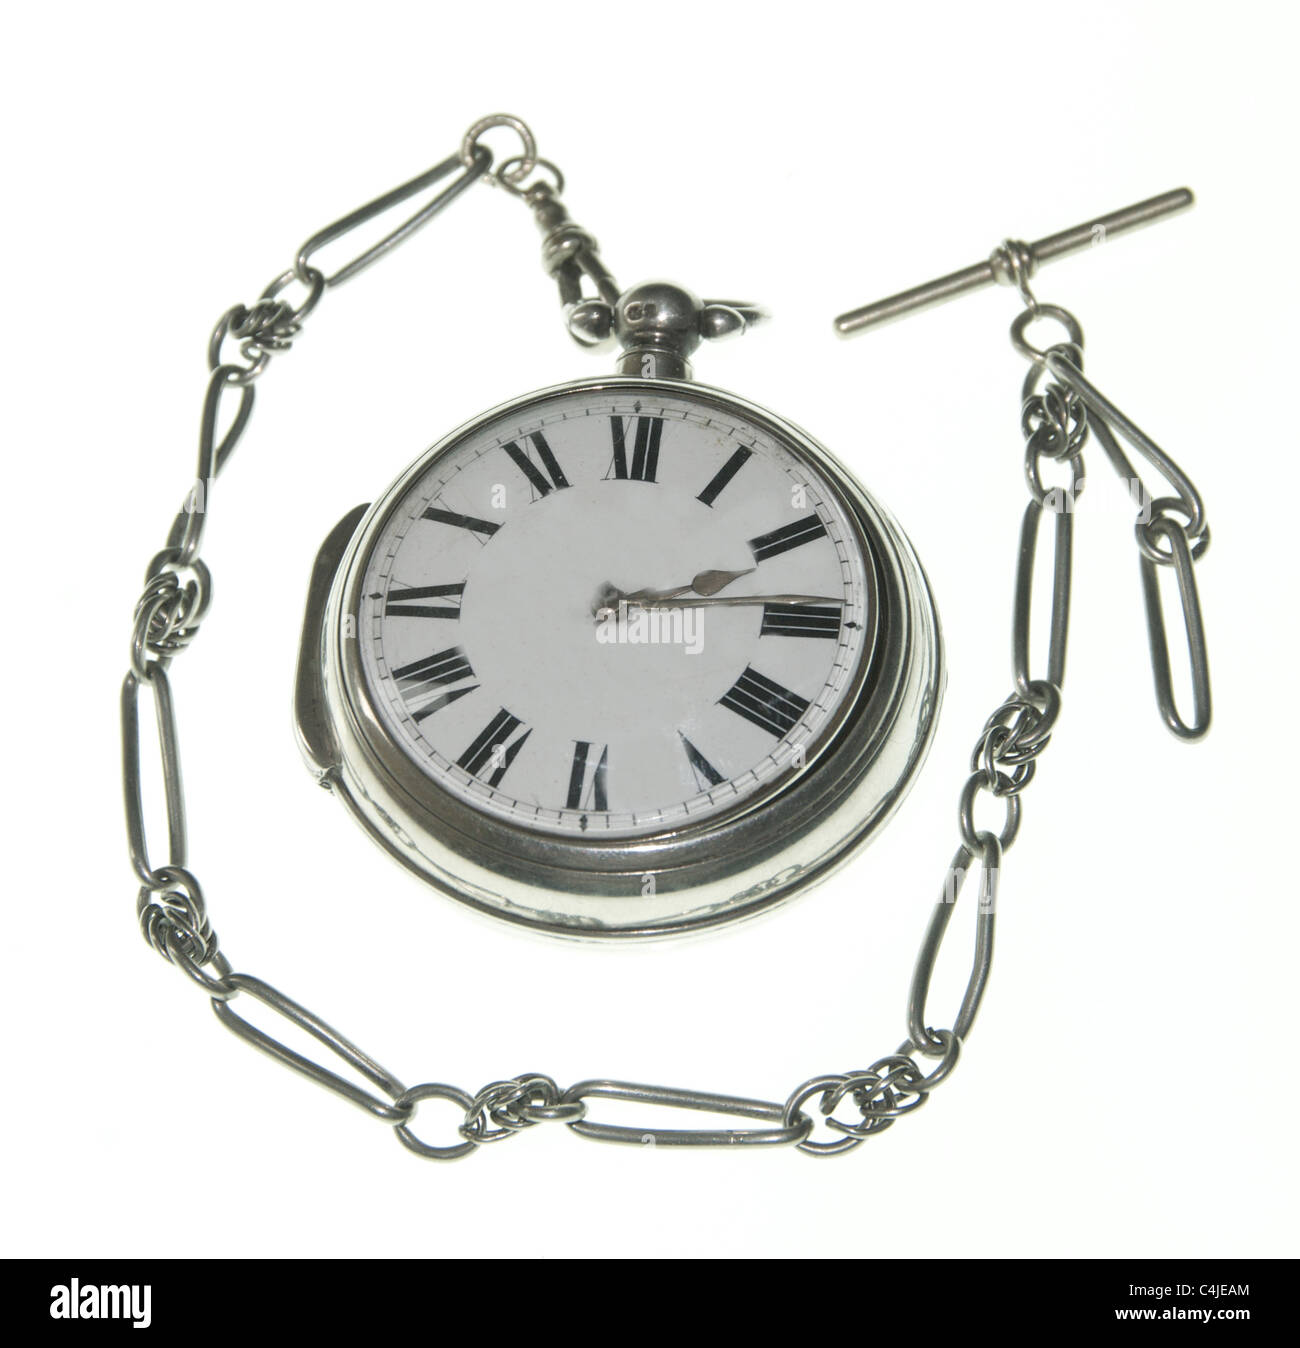 An antique silver pocket watch with a fob chain and case. - Stock Image